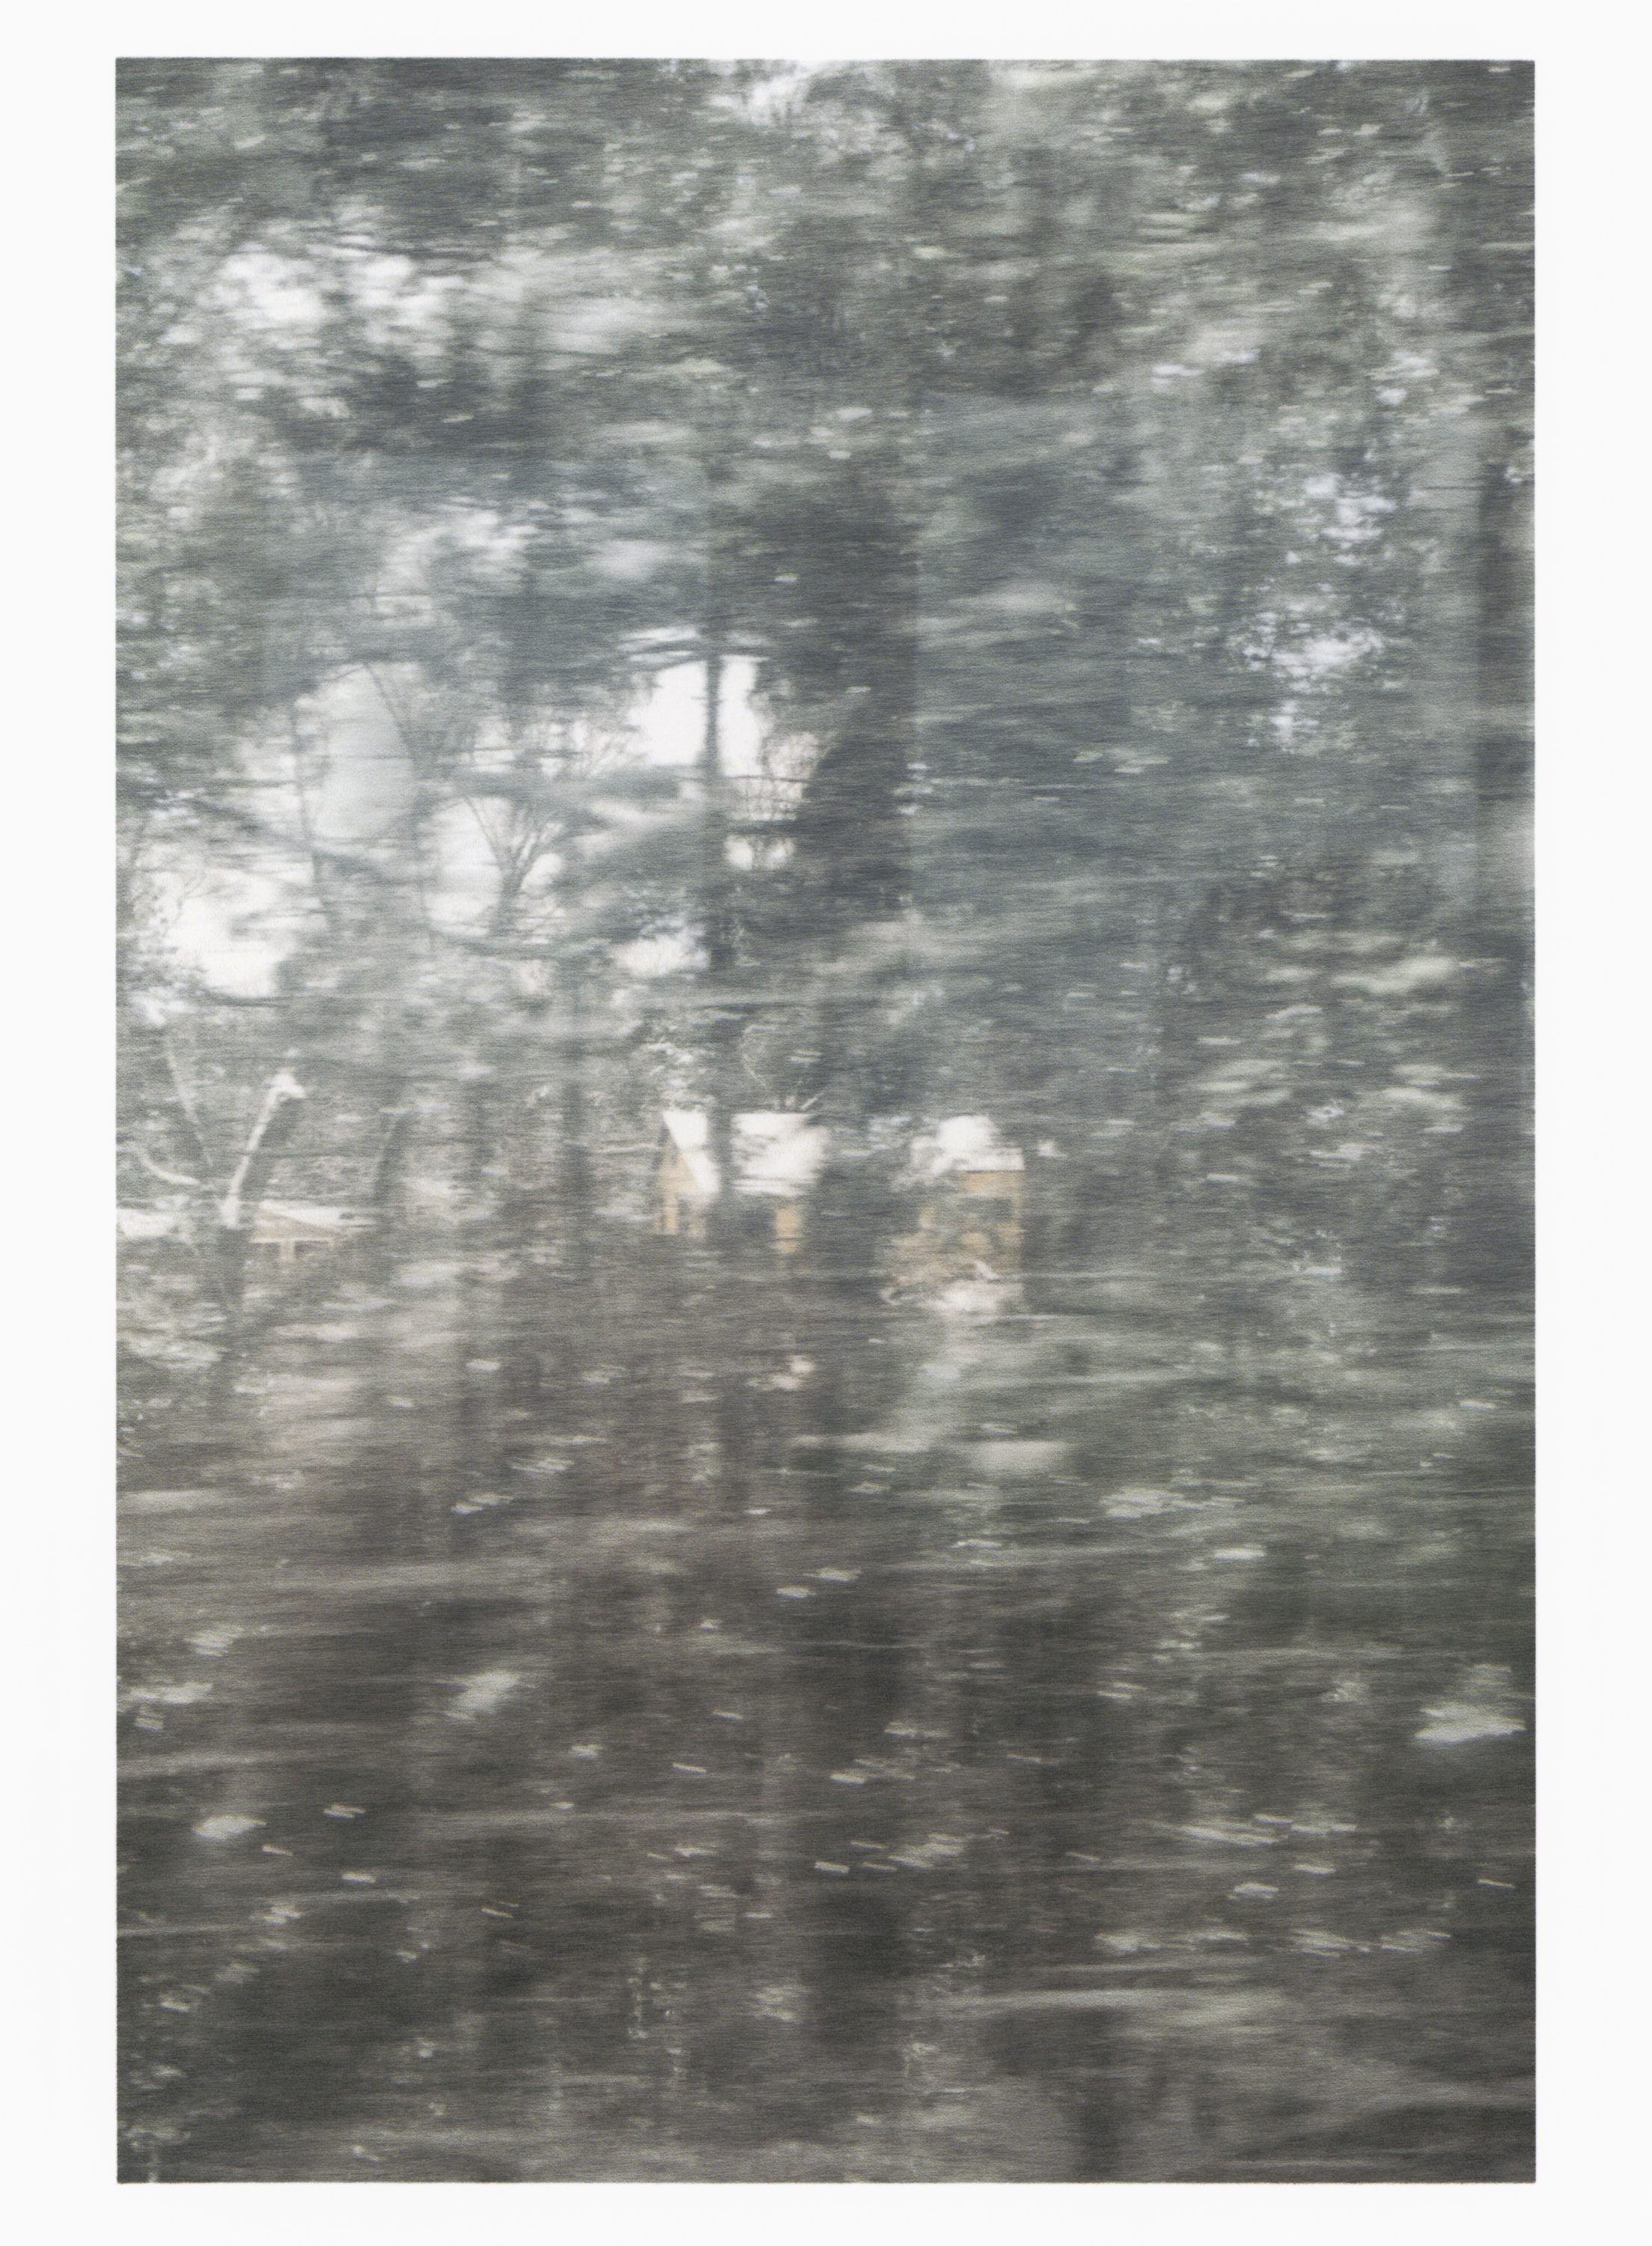 Untitled (glass, forest, house)